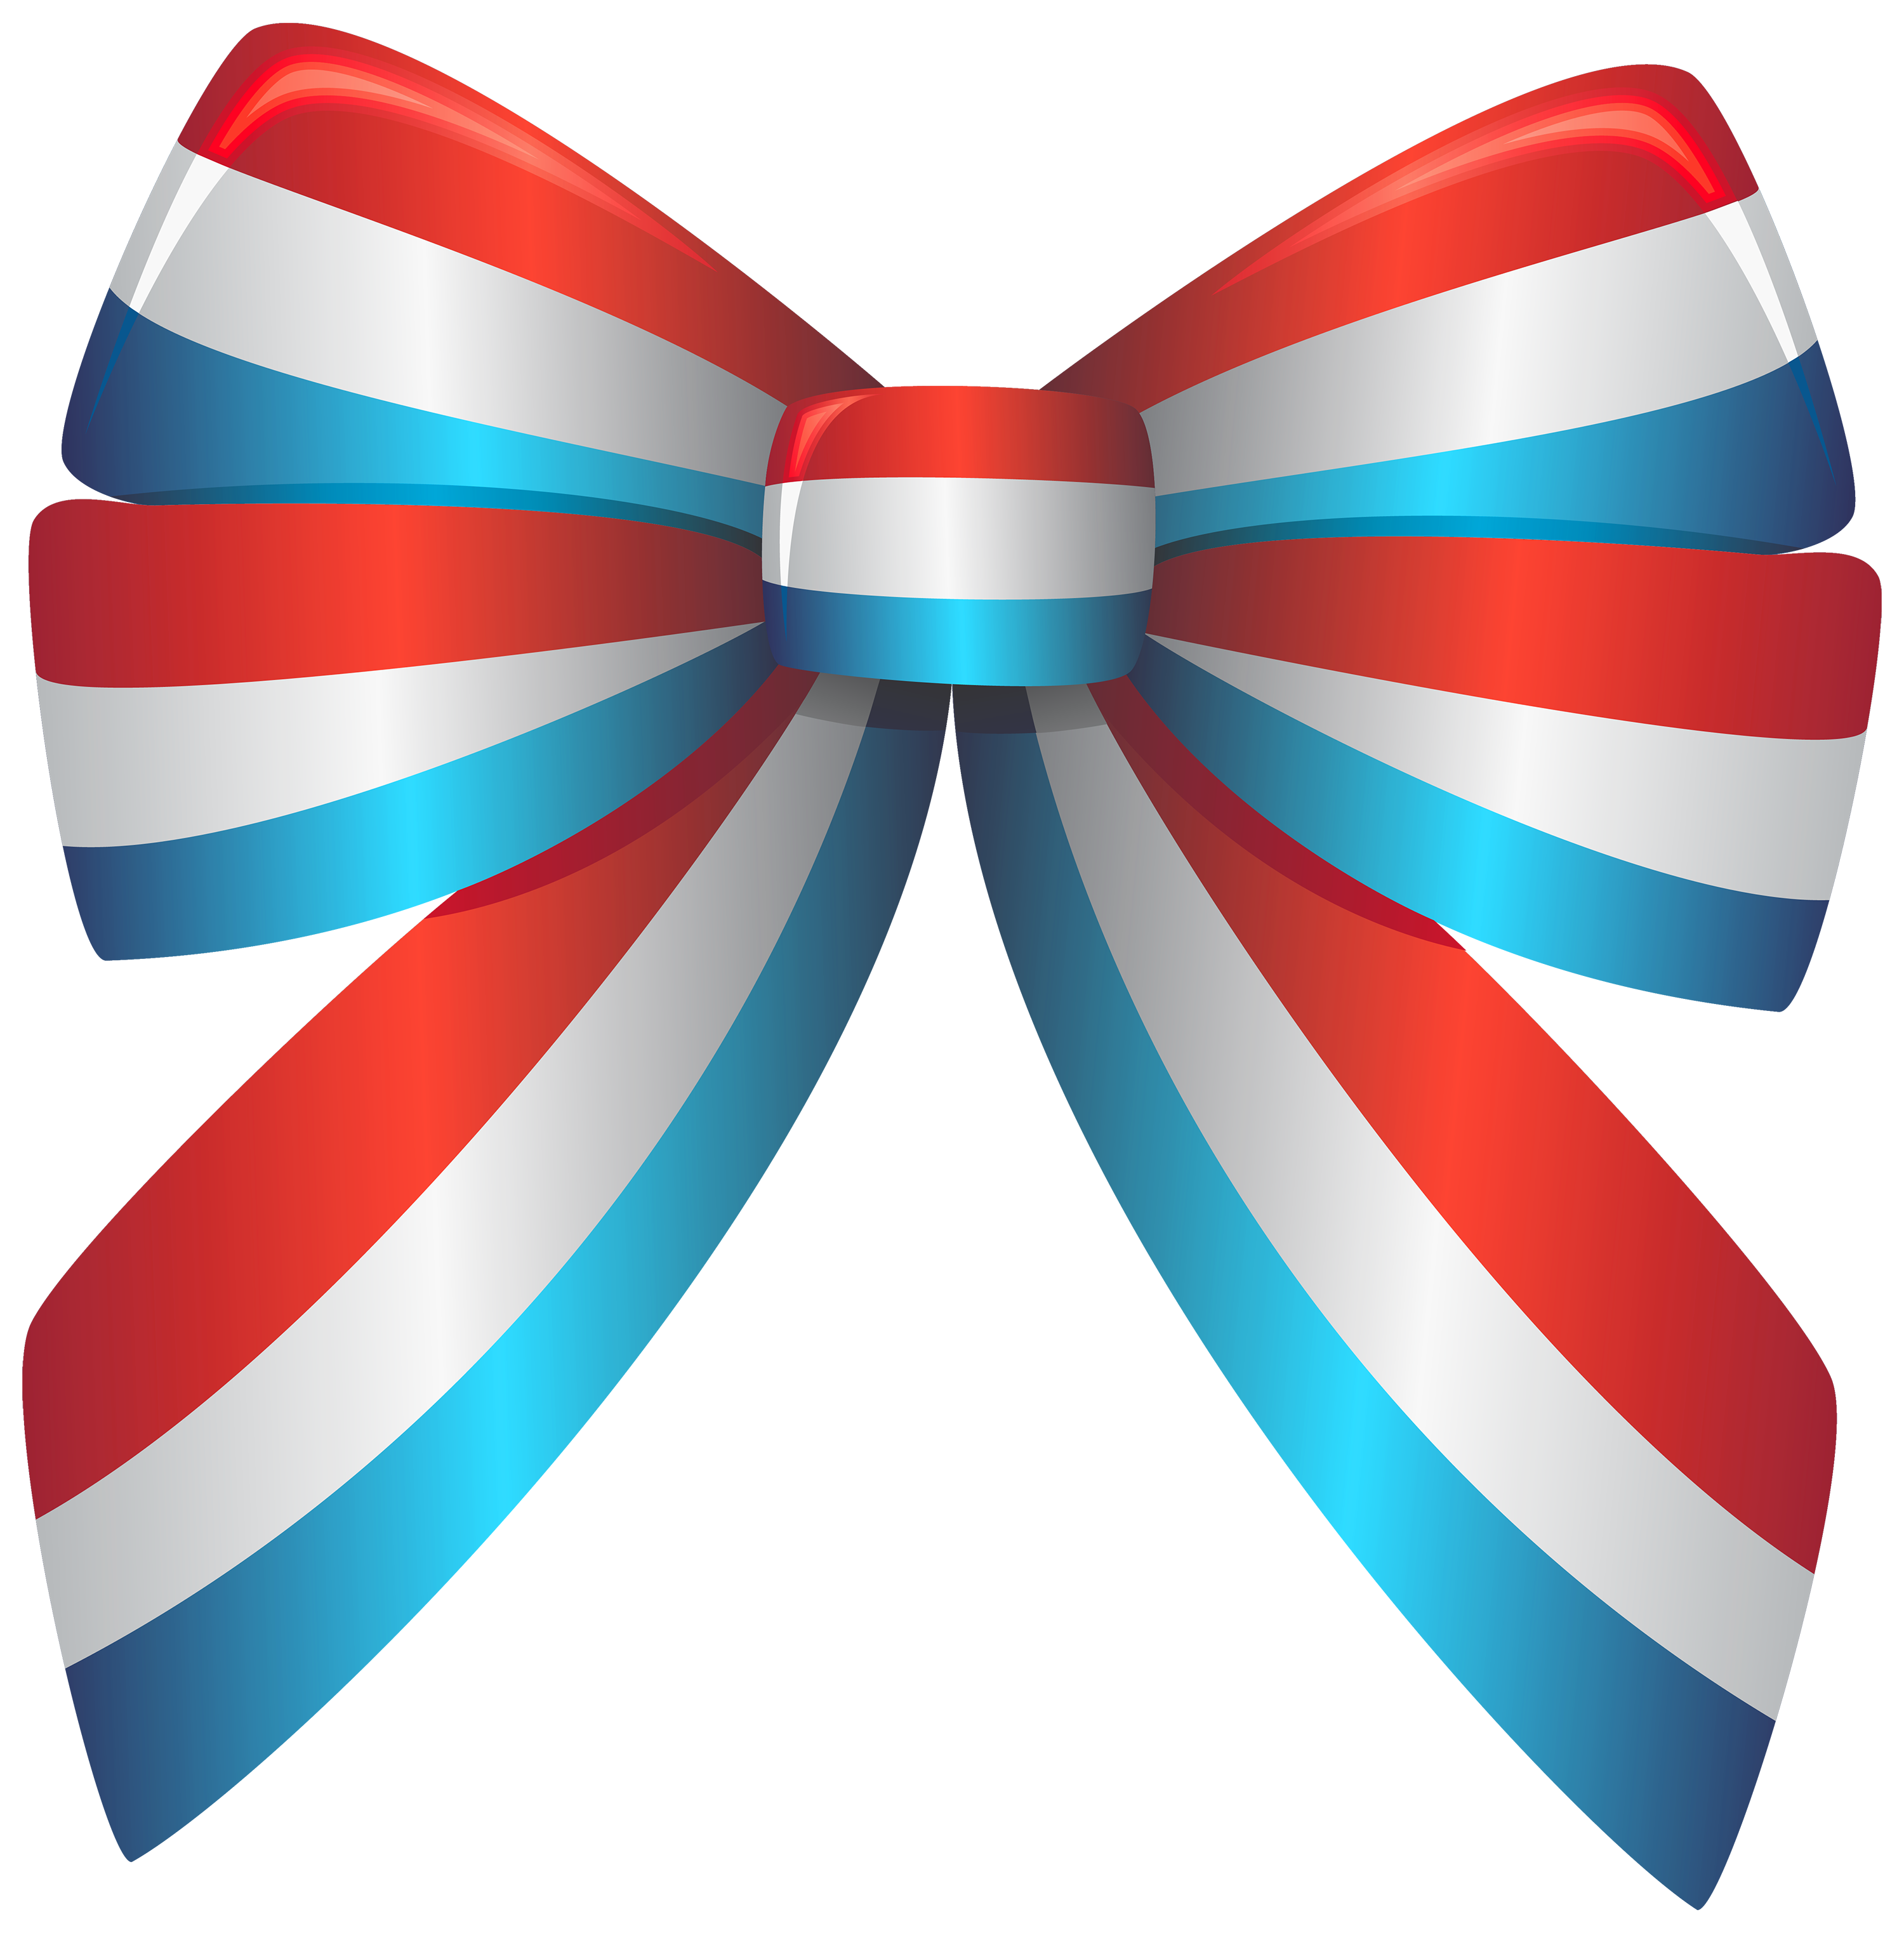 Website ribbon png. Red white and blue